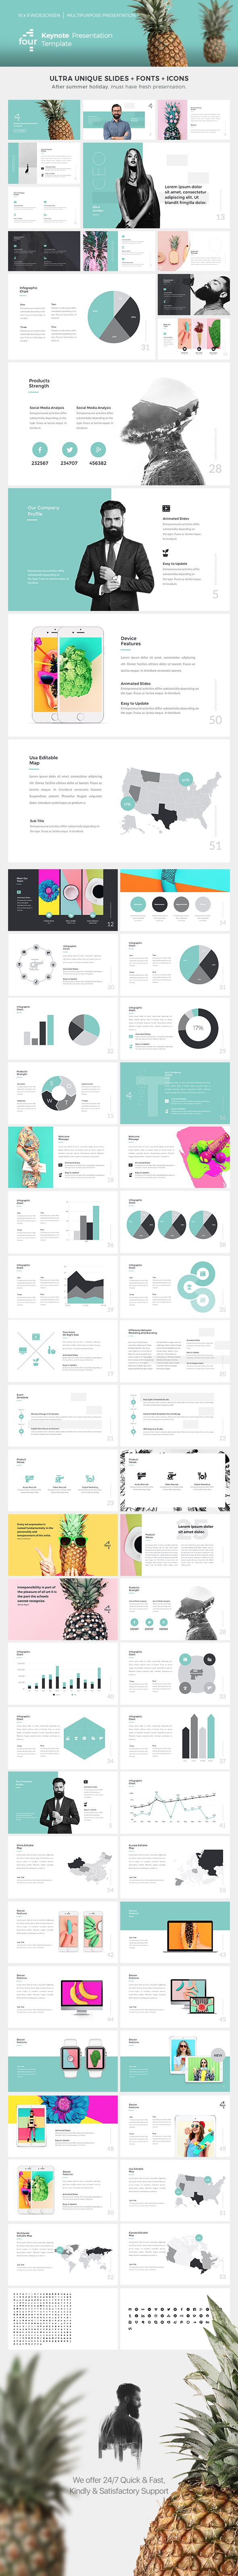 1496 best powerpoint excellent templates for pt images on